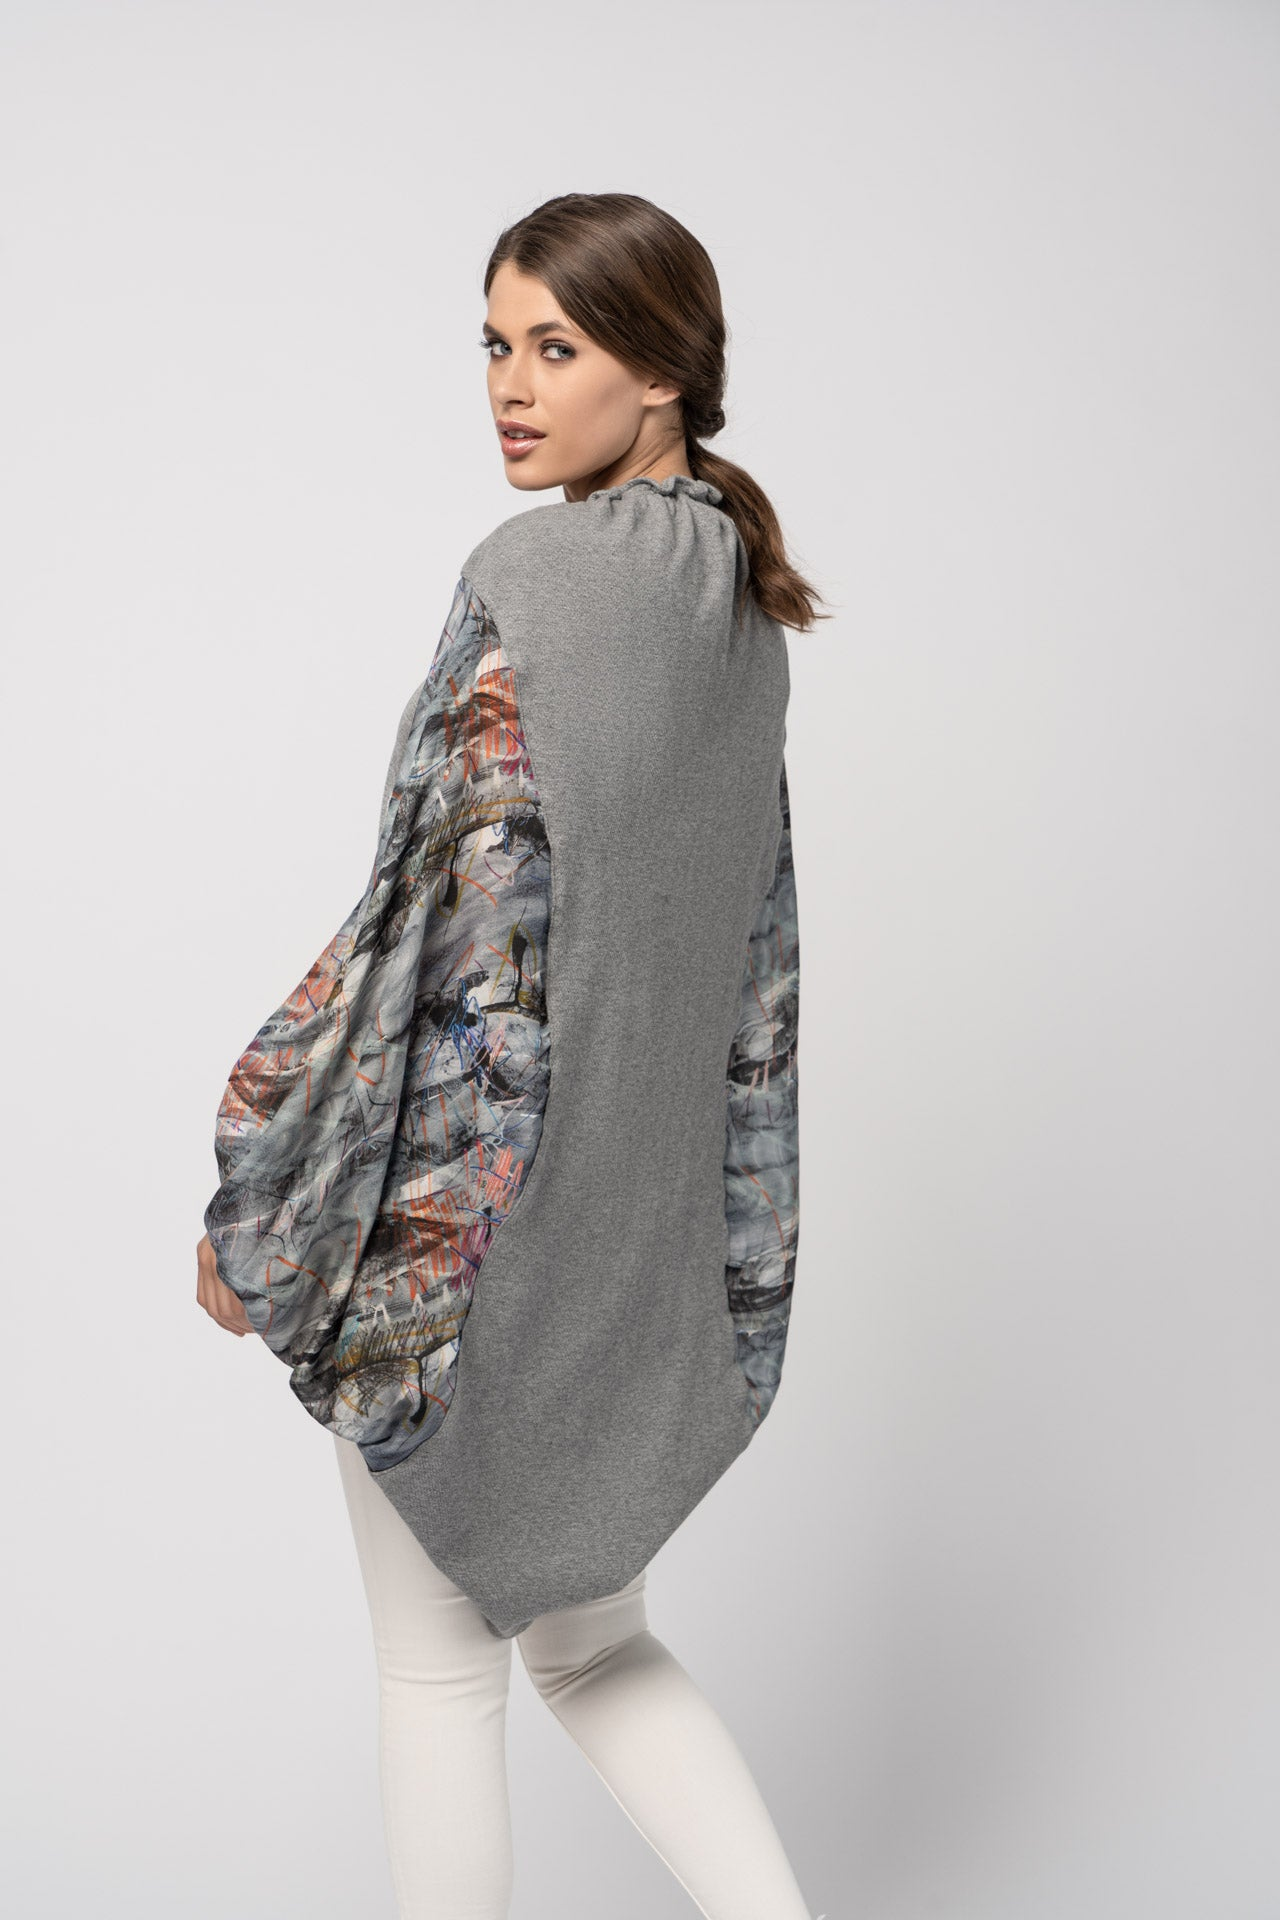 Figura Shawl - Gray Abstract Print Shawl - artTECA